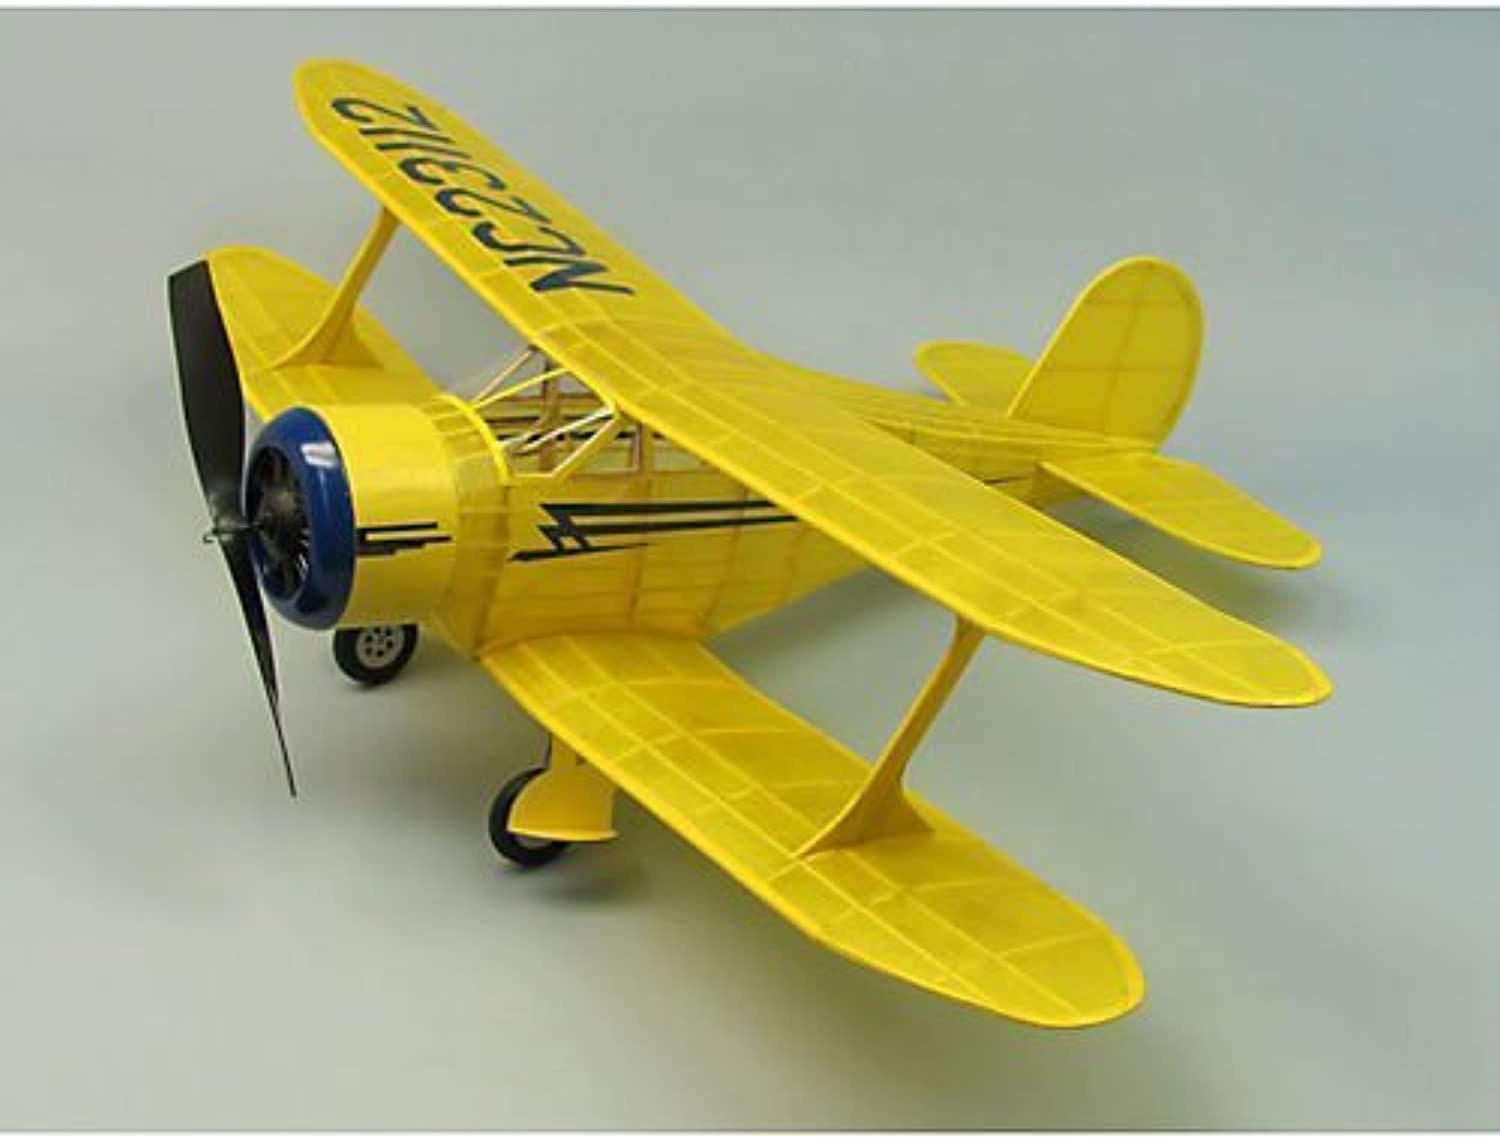 ahorra hasta un 50% 30  Staggerwing Staggerwing Staggerwing Aircraft Kit by Dumas  barato y de alta calidad